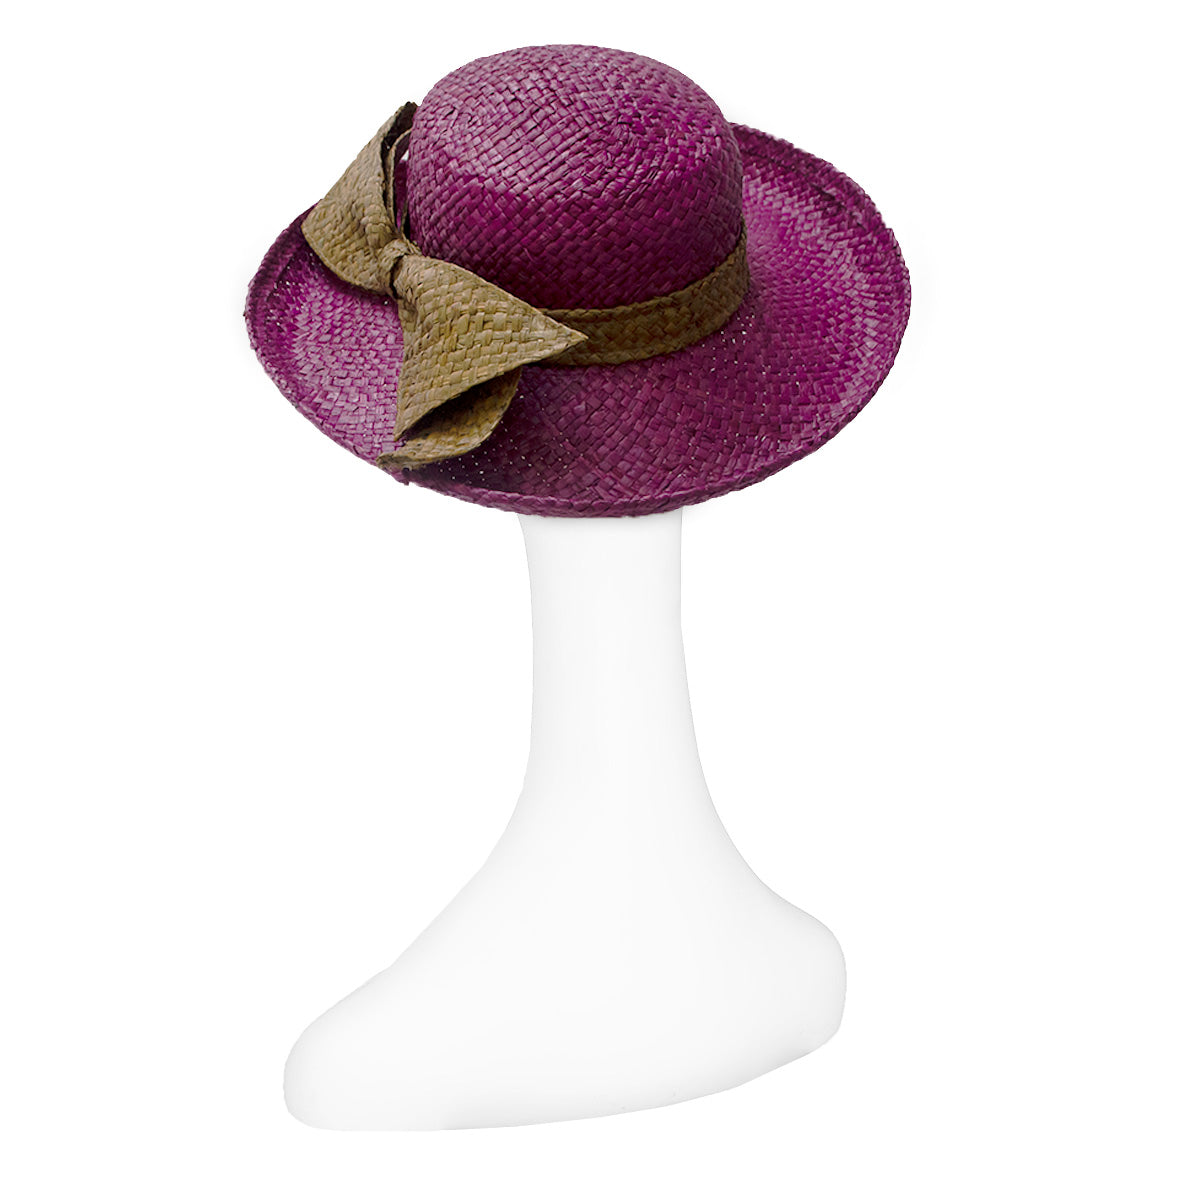 Vintage Betmar Purple Straw Wide Brim Sun Hat 5